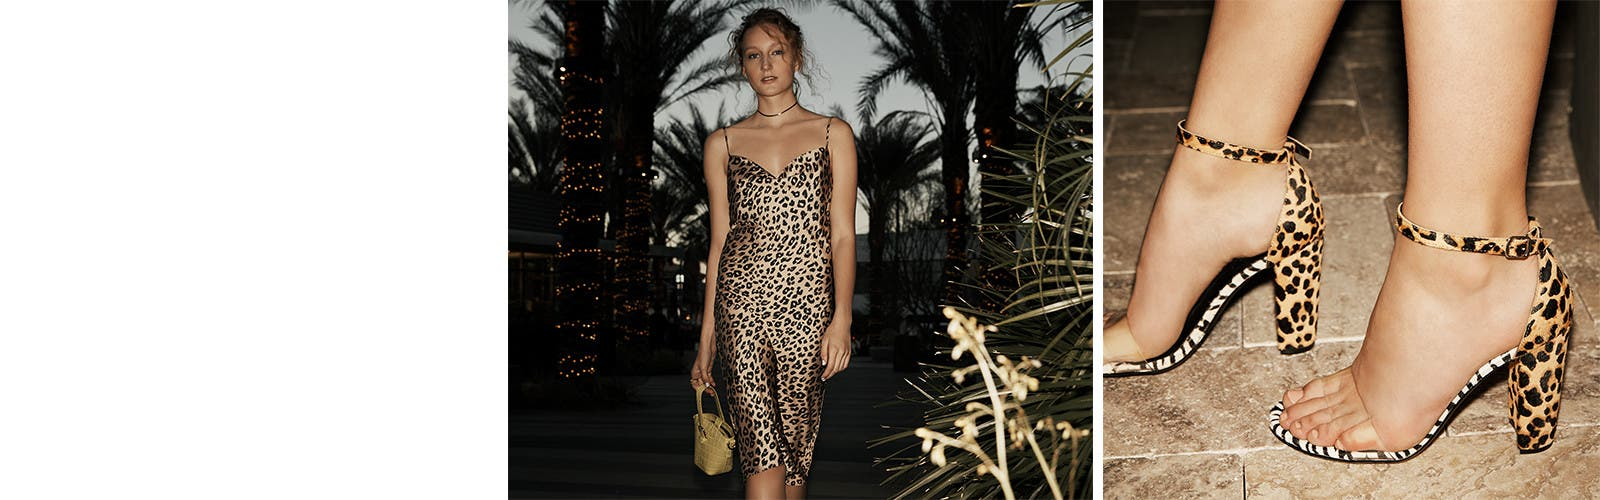 Wild things: animal-print dresses and shoes.